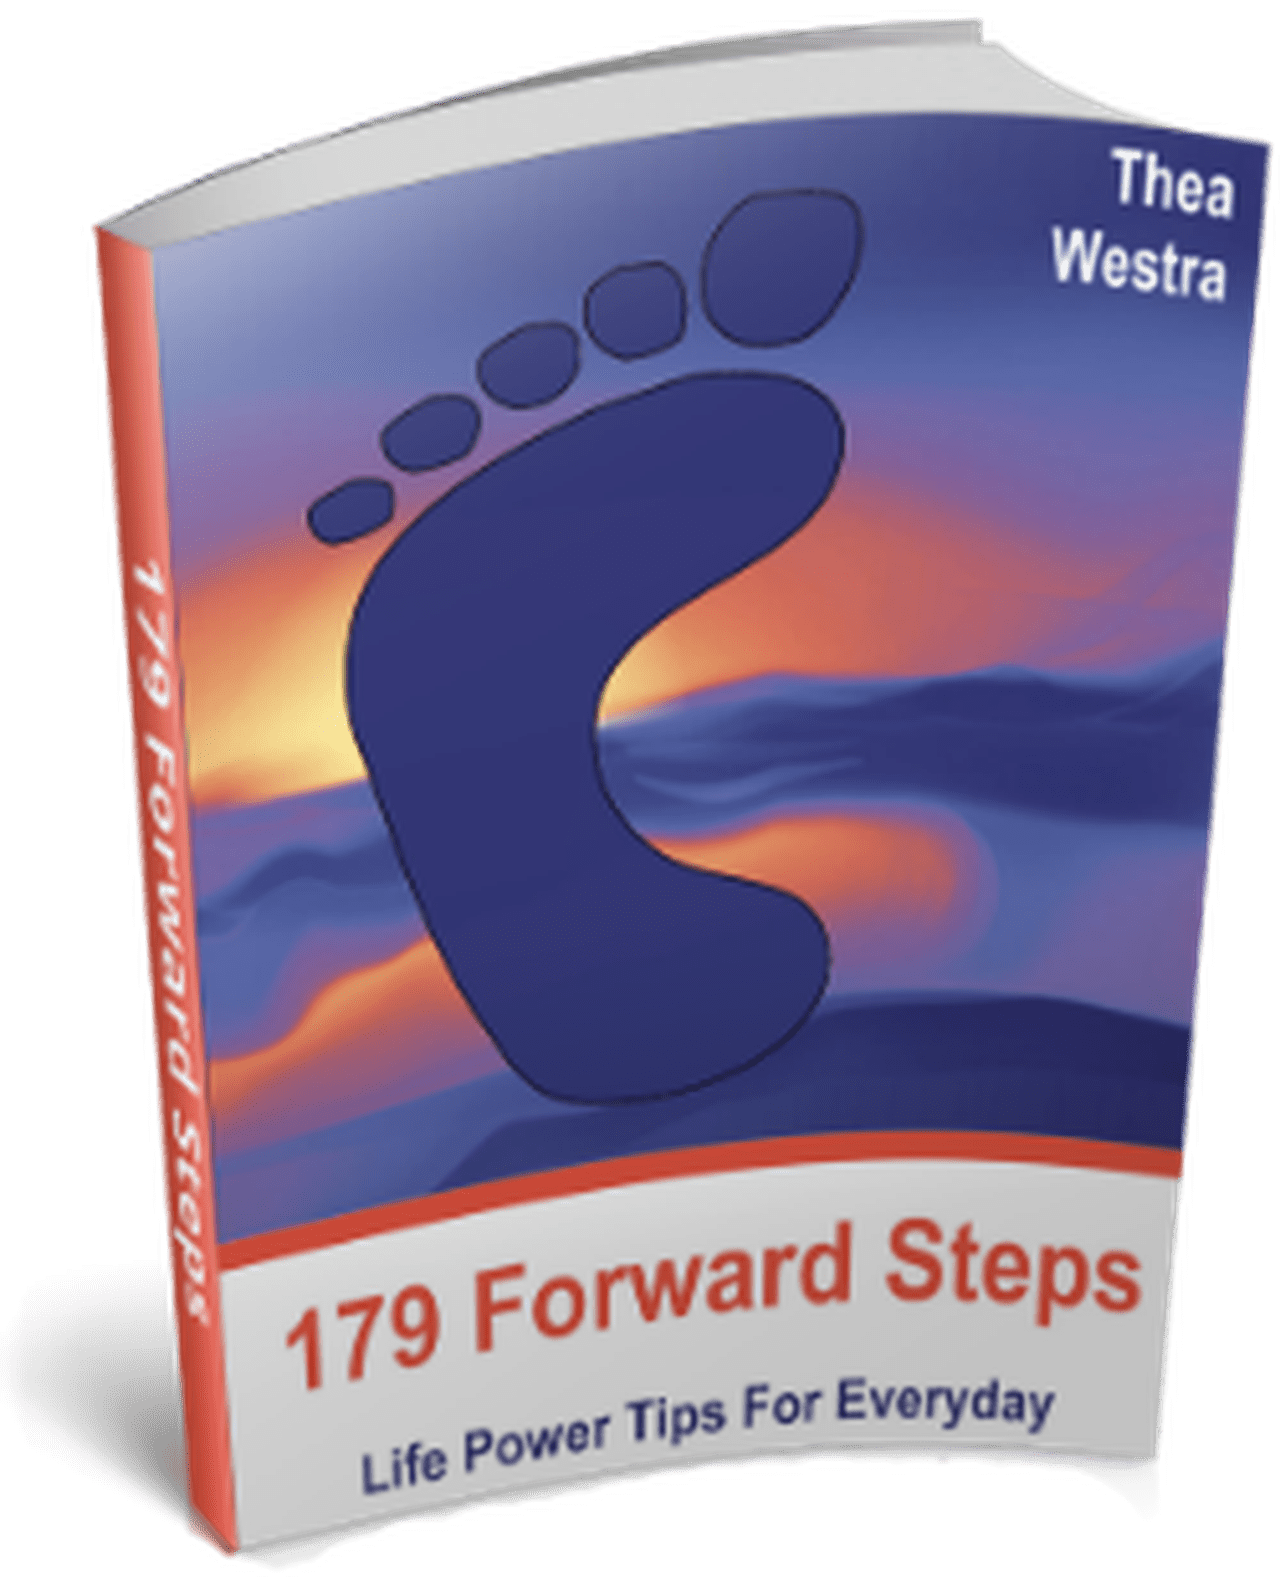 Self Improvement book with title 179 Forward Steps